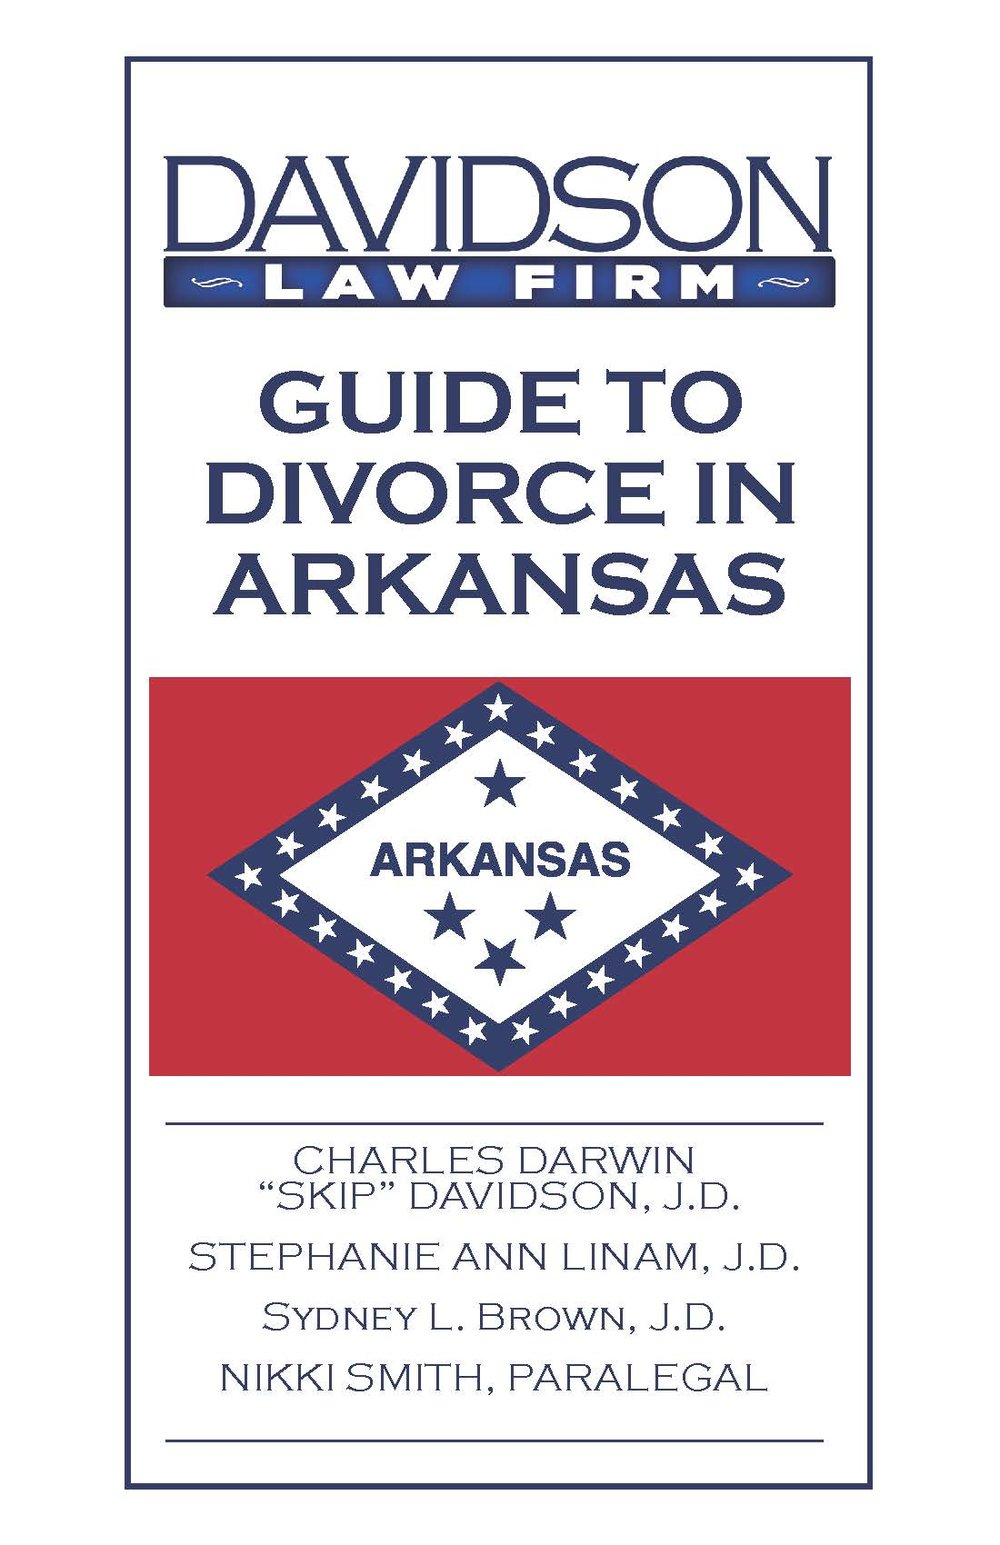 Guide to Divorce in Arkansas - Davidson Law Firm